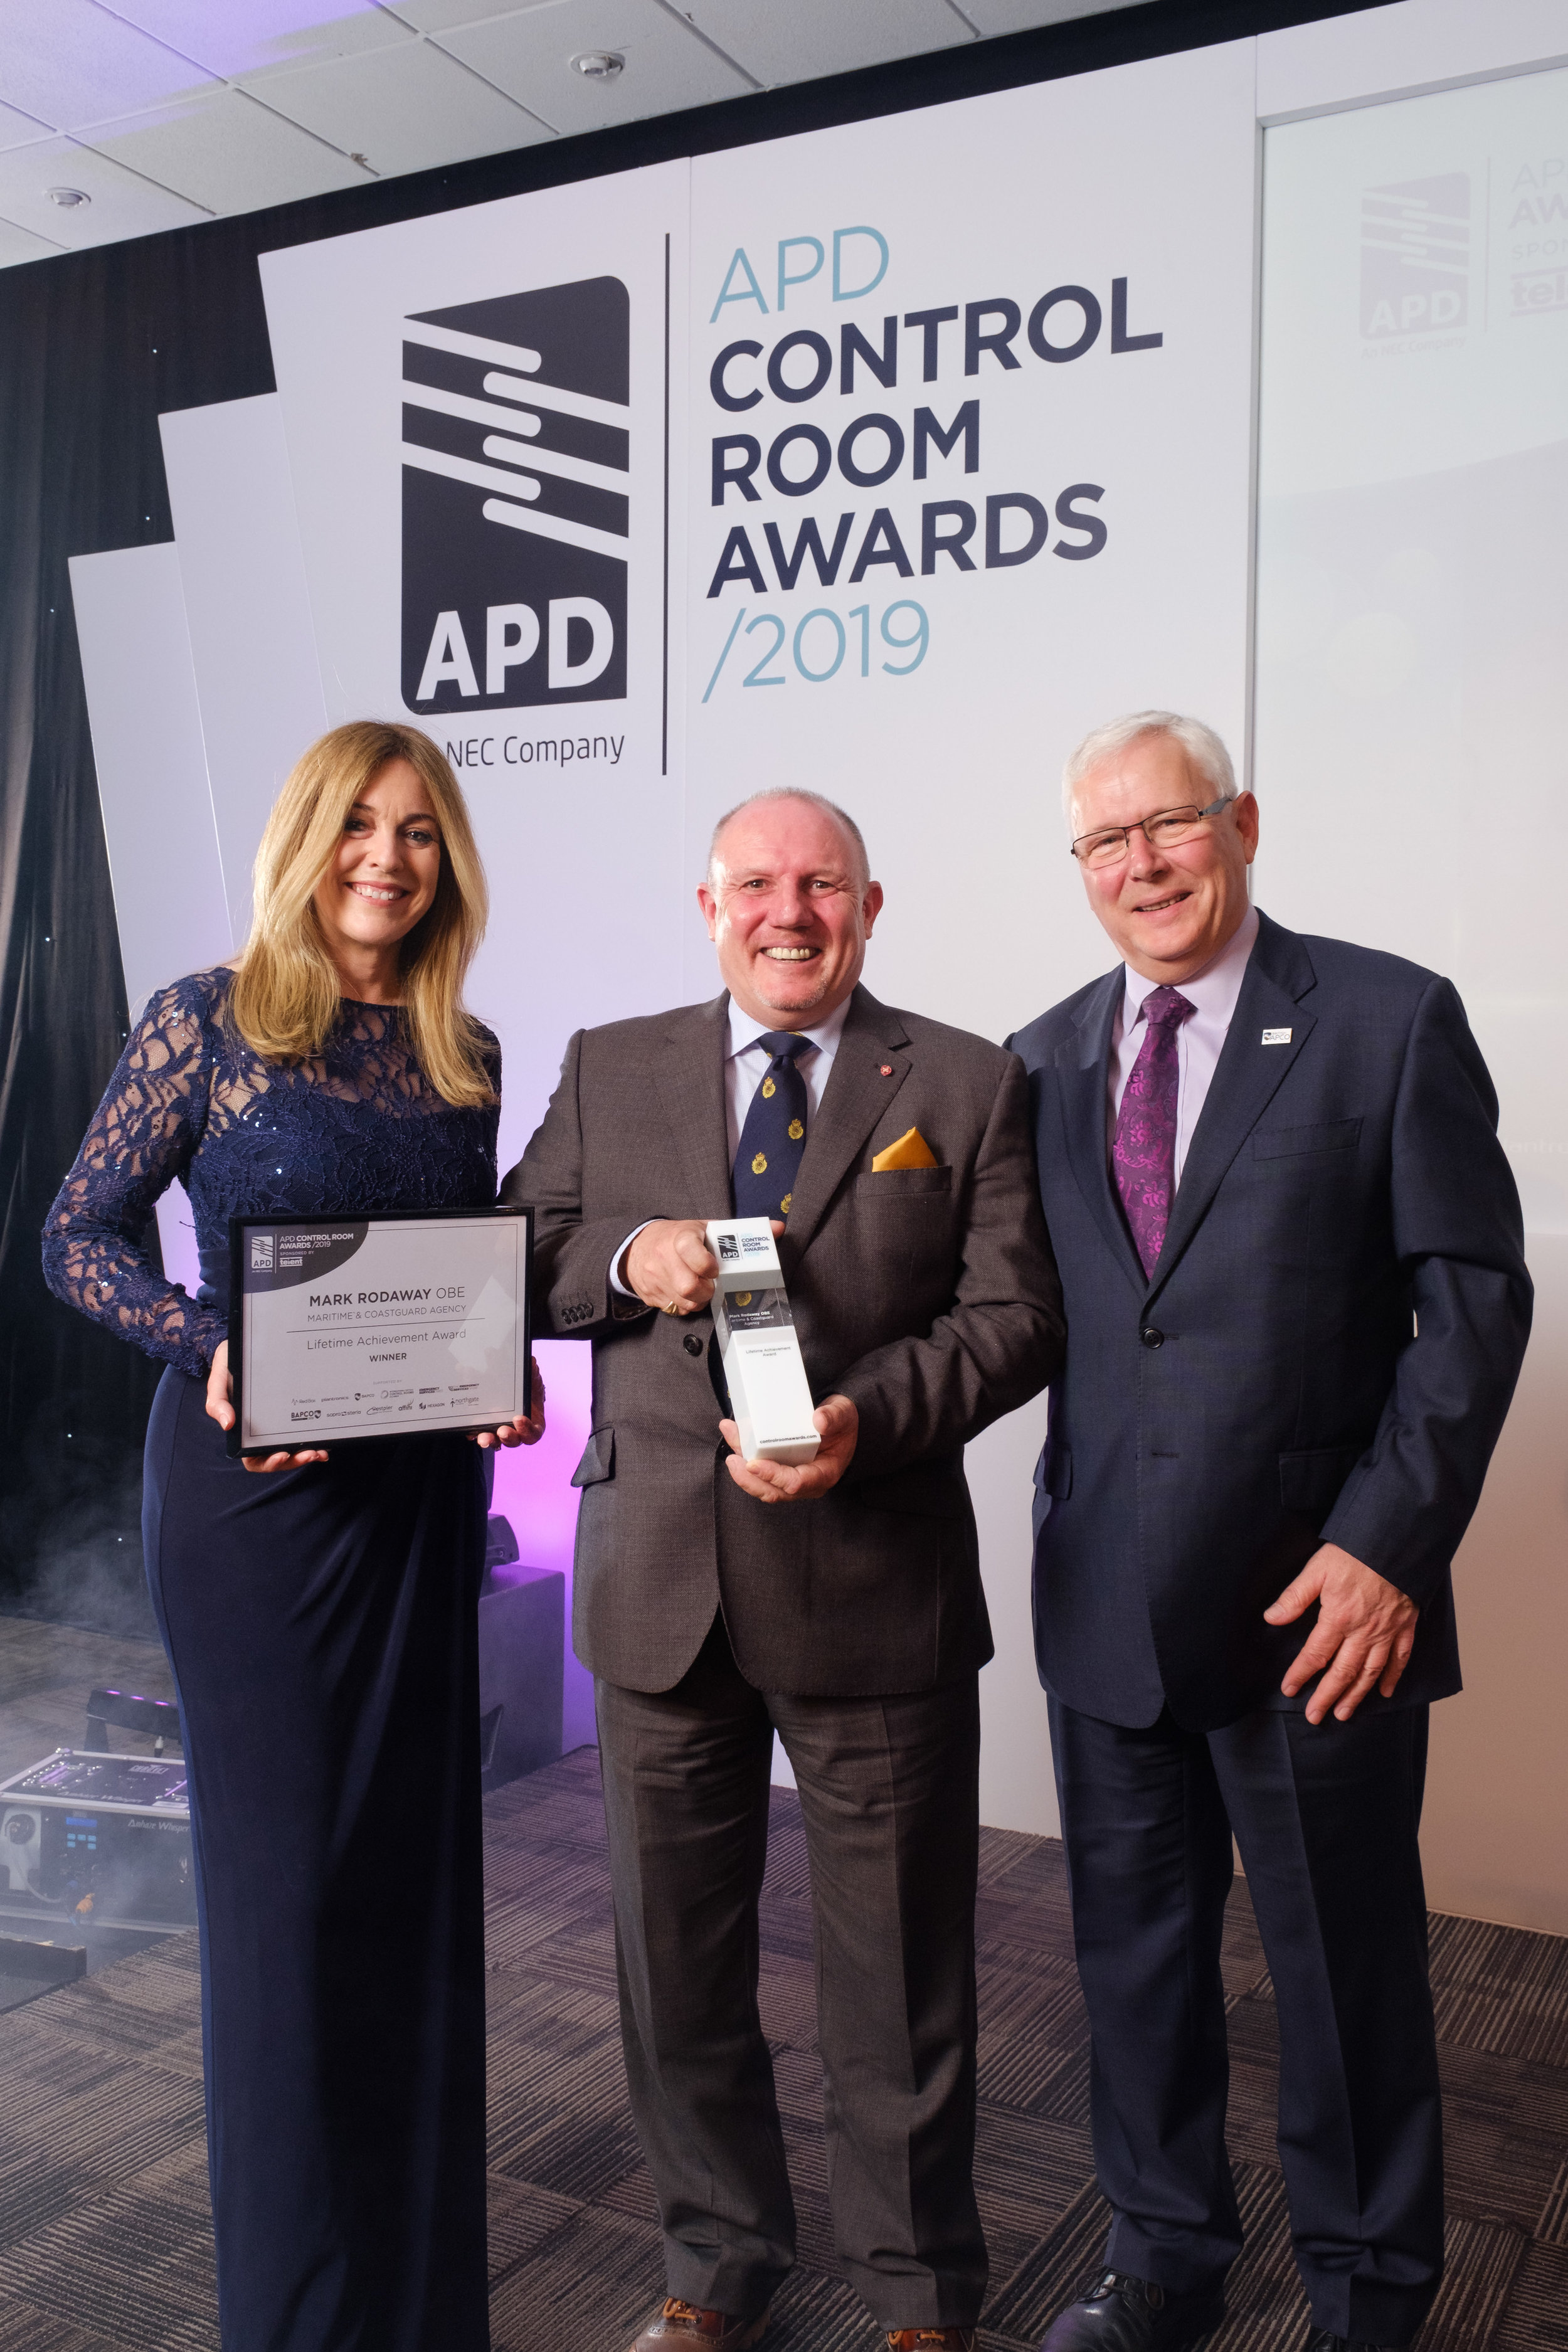 Mark Rodaway OBE, Lifetime Achievement Award winner with John Anthony MBE presenting from BAPCO Show 2019